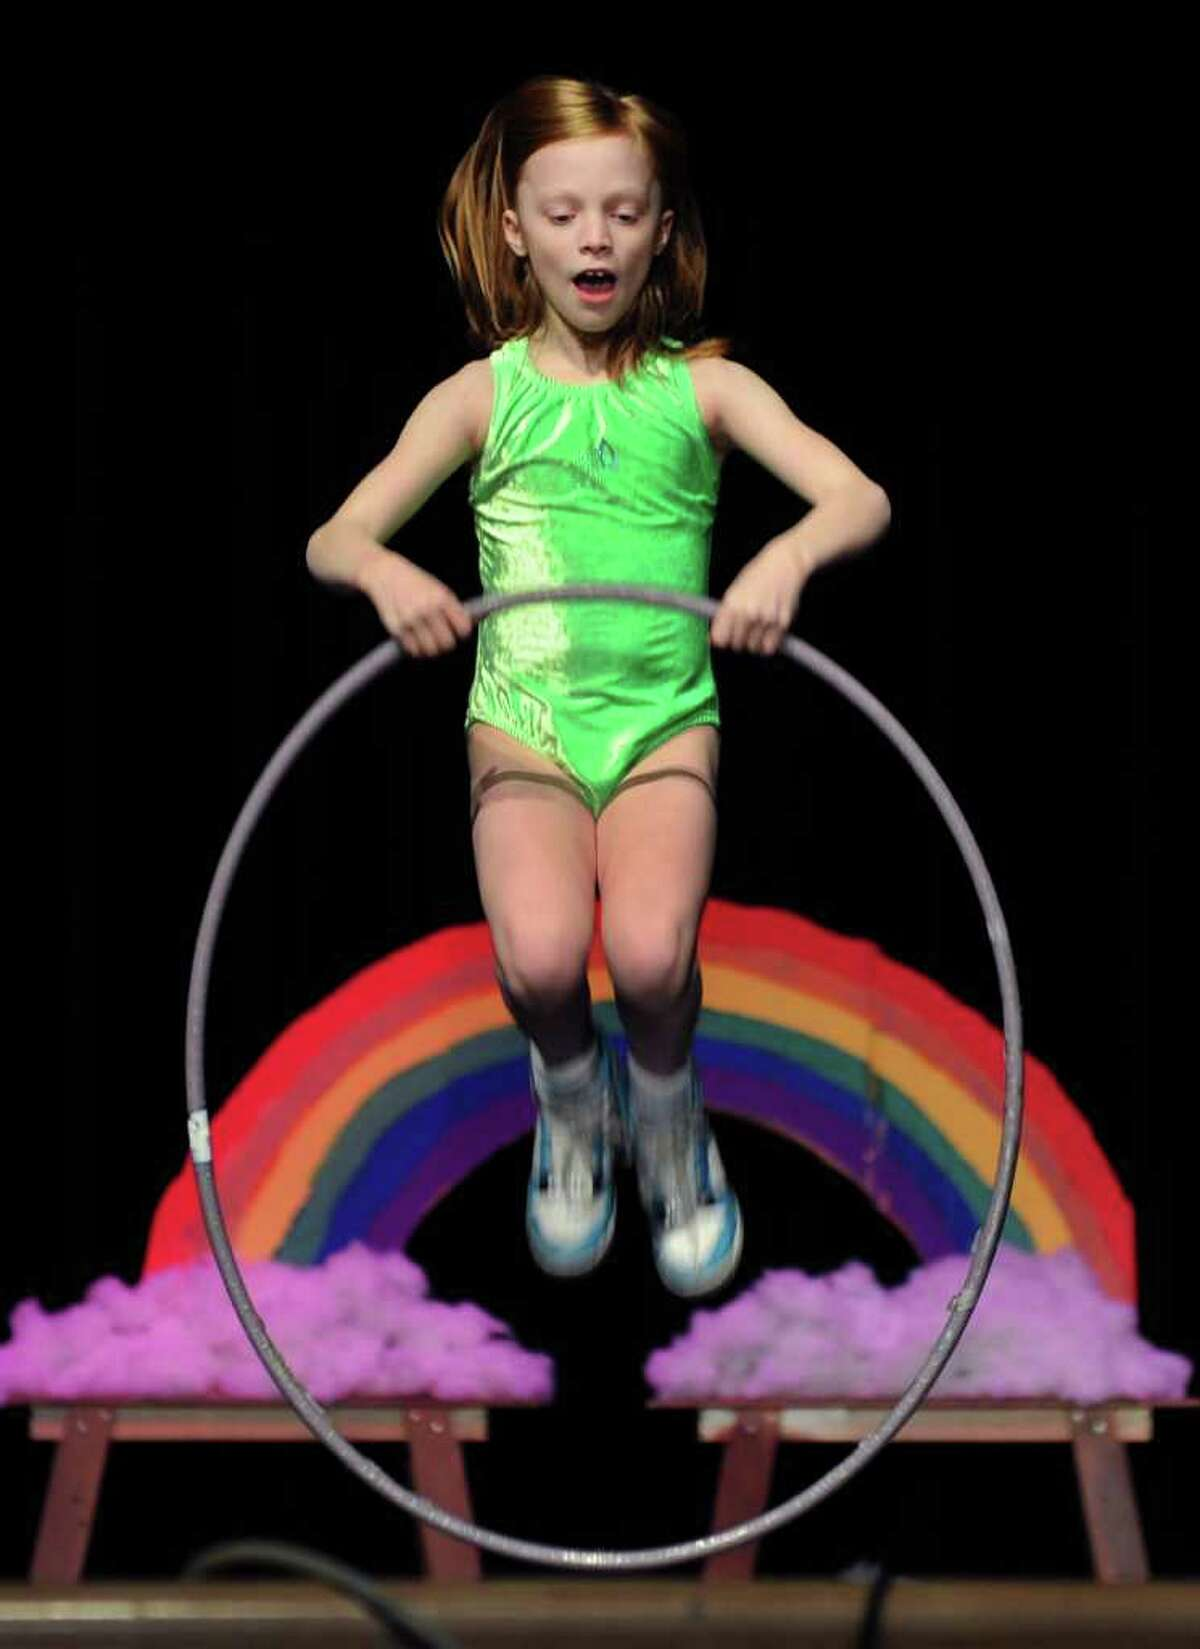 Ella Edwards performs as the Queen of the Hoola Hoops, during the Osborn Hill Elementary School's Annual Variety Show at Roger Ludlowe Middle School Auditorium in Fairfield, Conn. on Friday January 29, 2010.